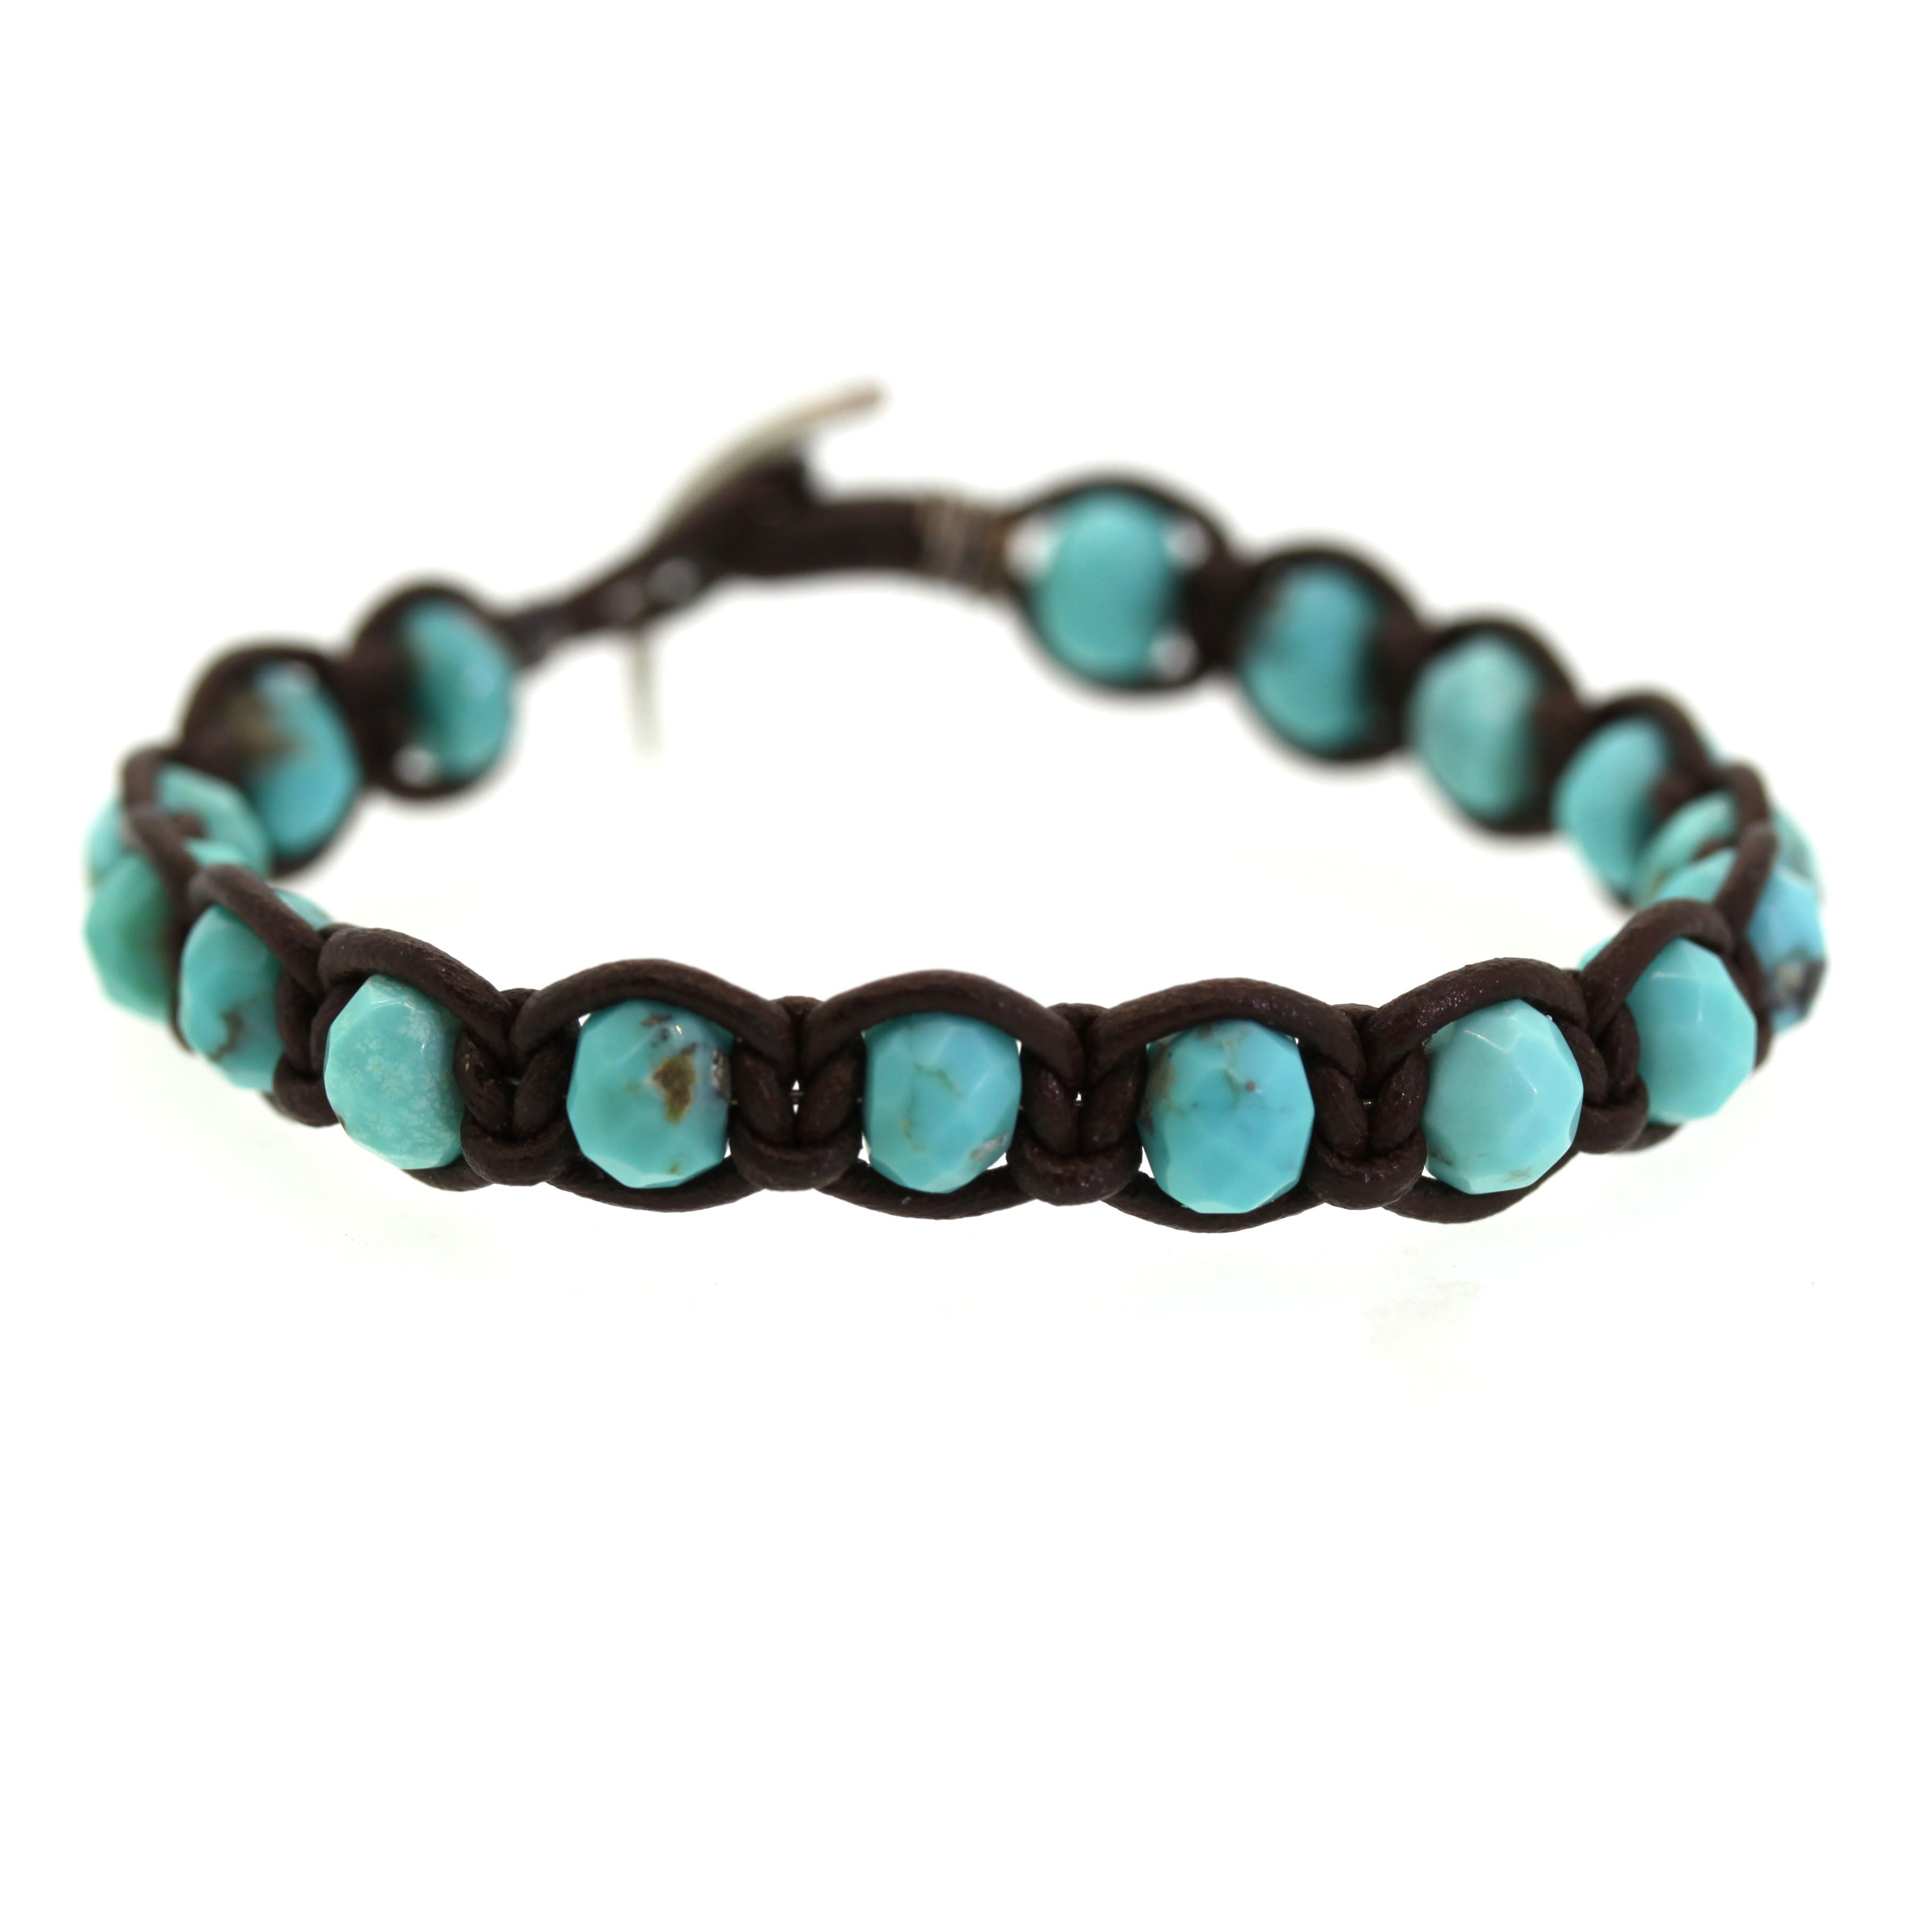 Chunky Turquoise & Leather Bracelet